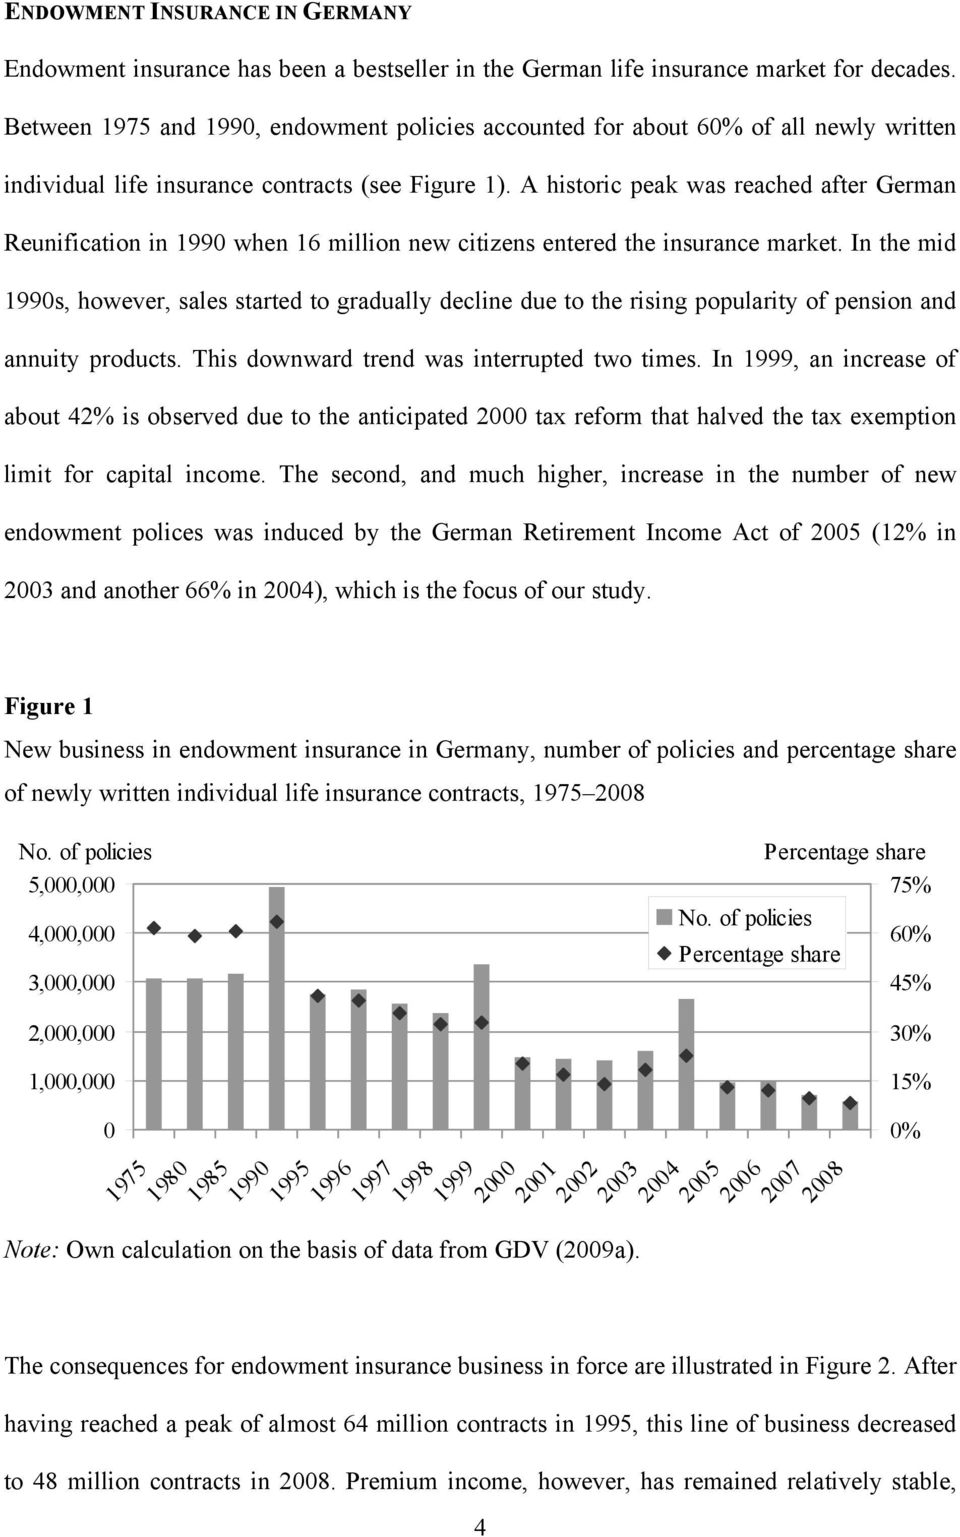 A historic peak was reached after German Reunification in 1990 when 16 million new citizens entered the insurance market.